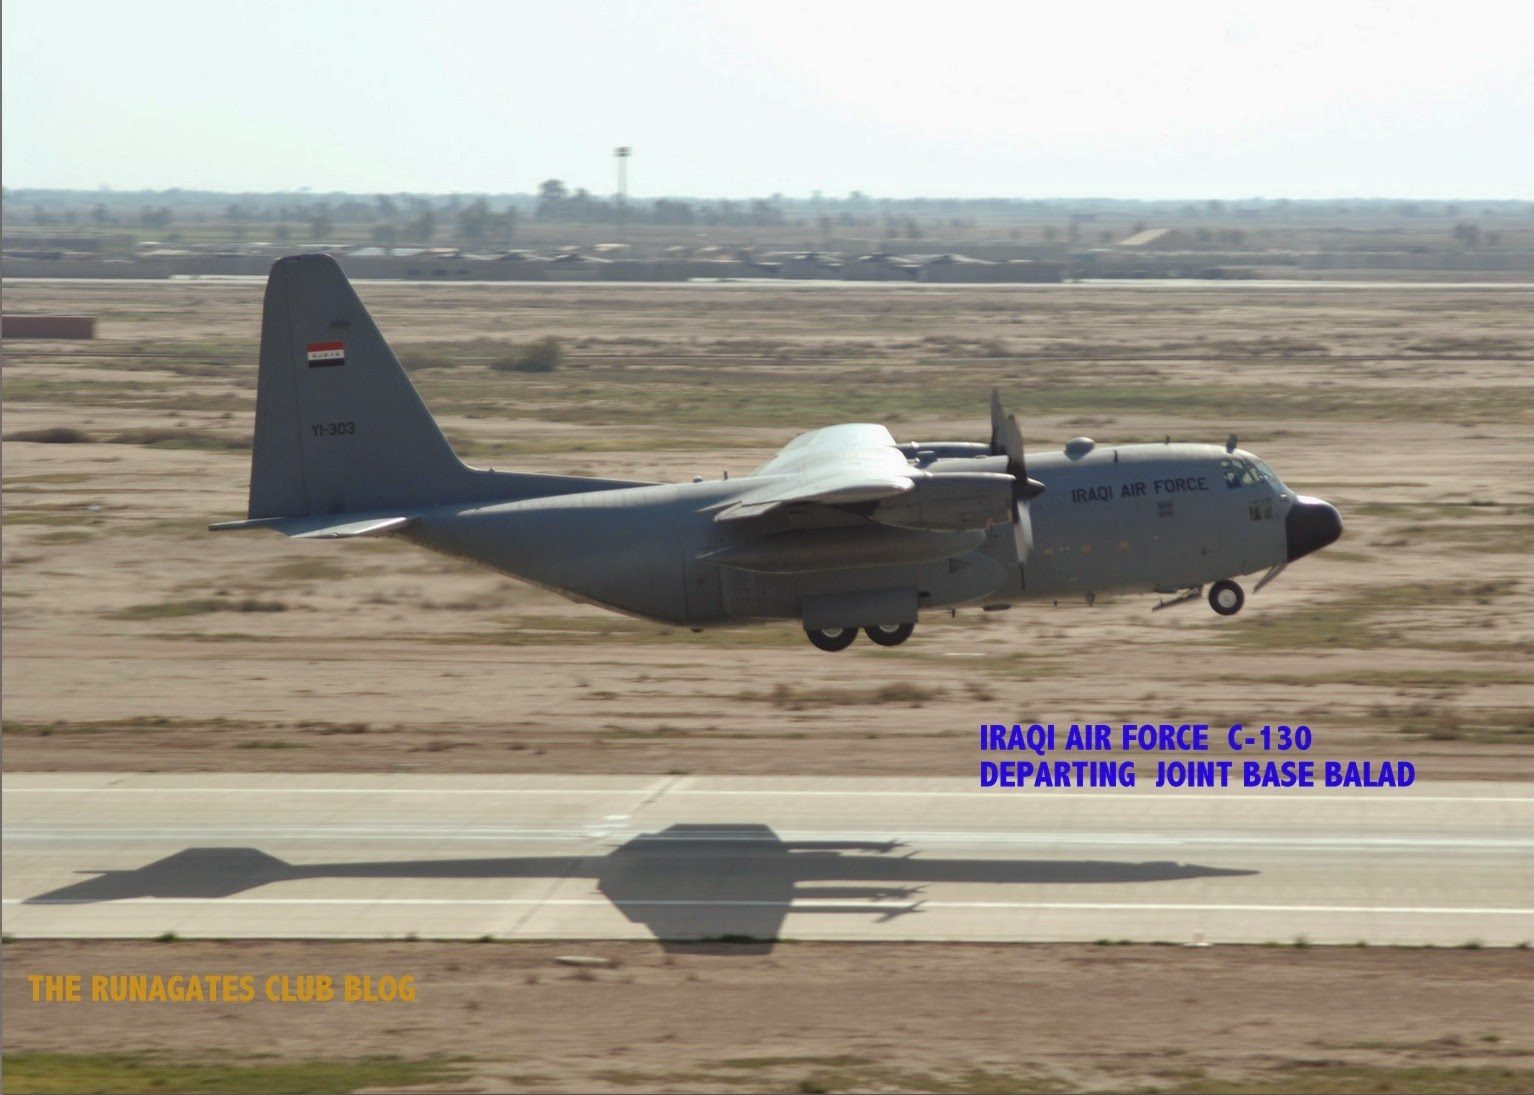 Iraqi Air Force C-130 transport photographed departing Joint Base Balad